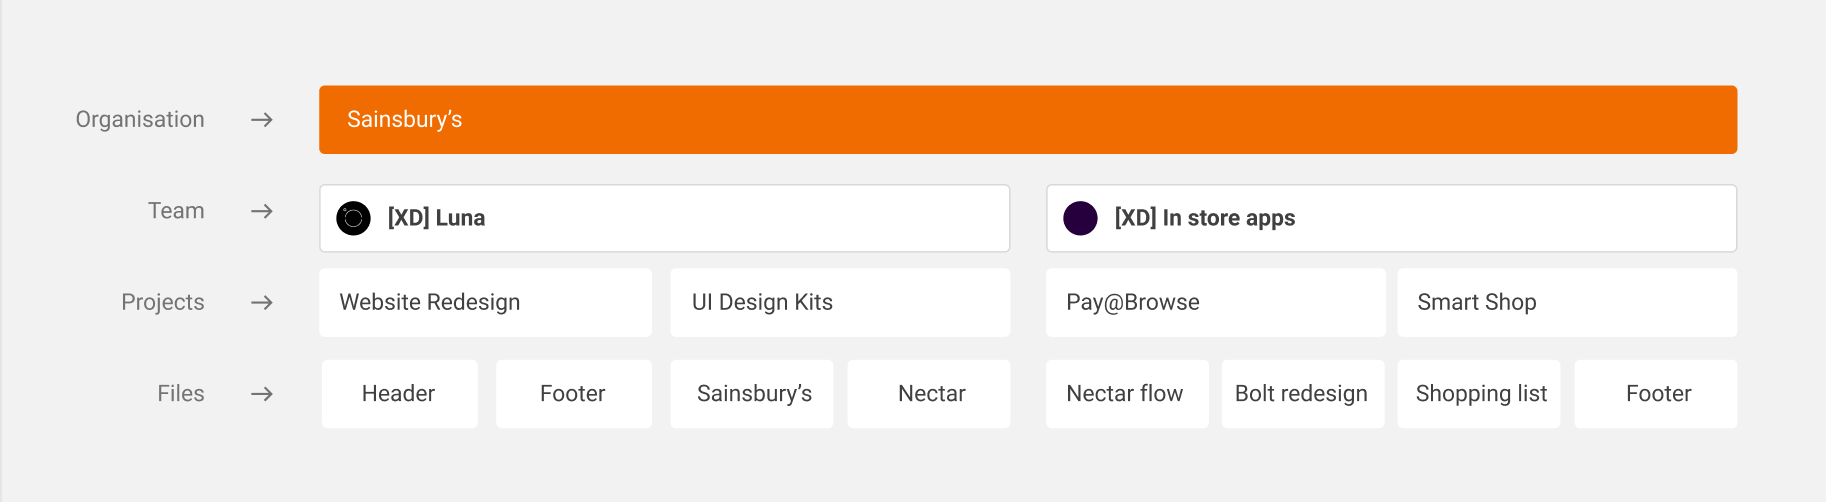 Sainsbury's Figma file organisation diagram. Sainsbury's is at the top, then team names are below it, with products and files